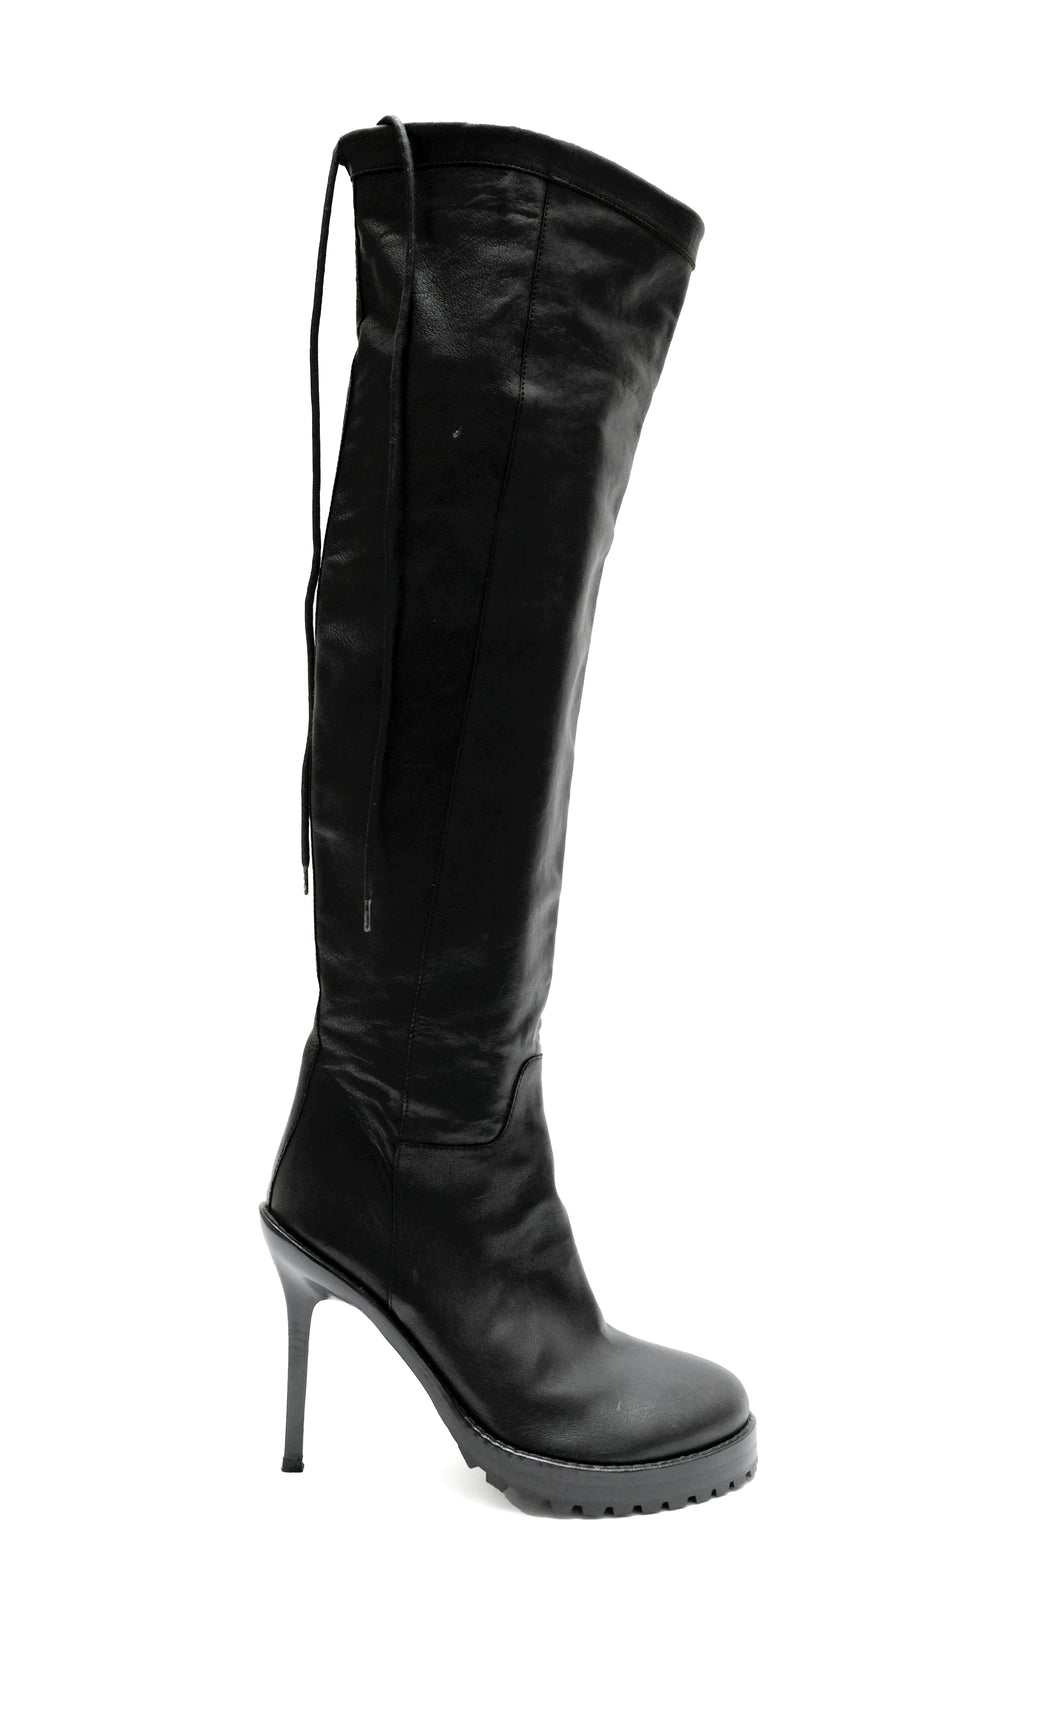 Ann Demeulemeester Knee Boots with Stiletto Heel, UK5.5